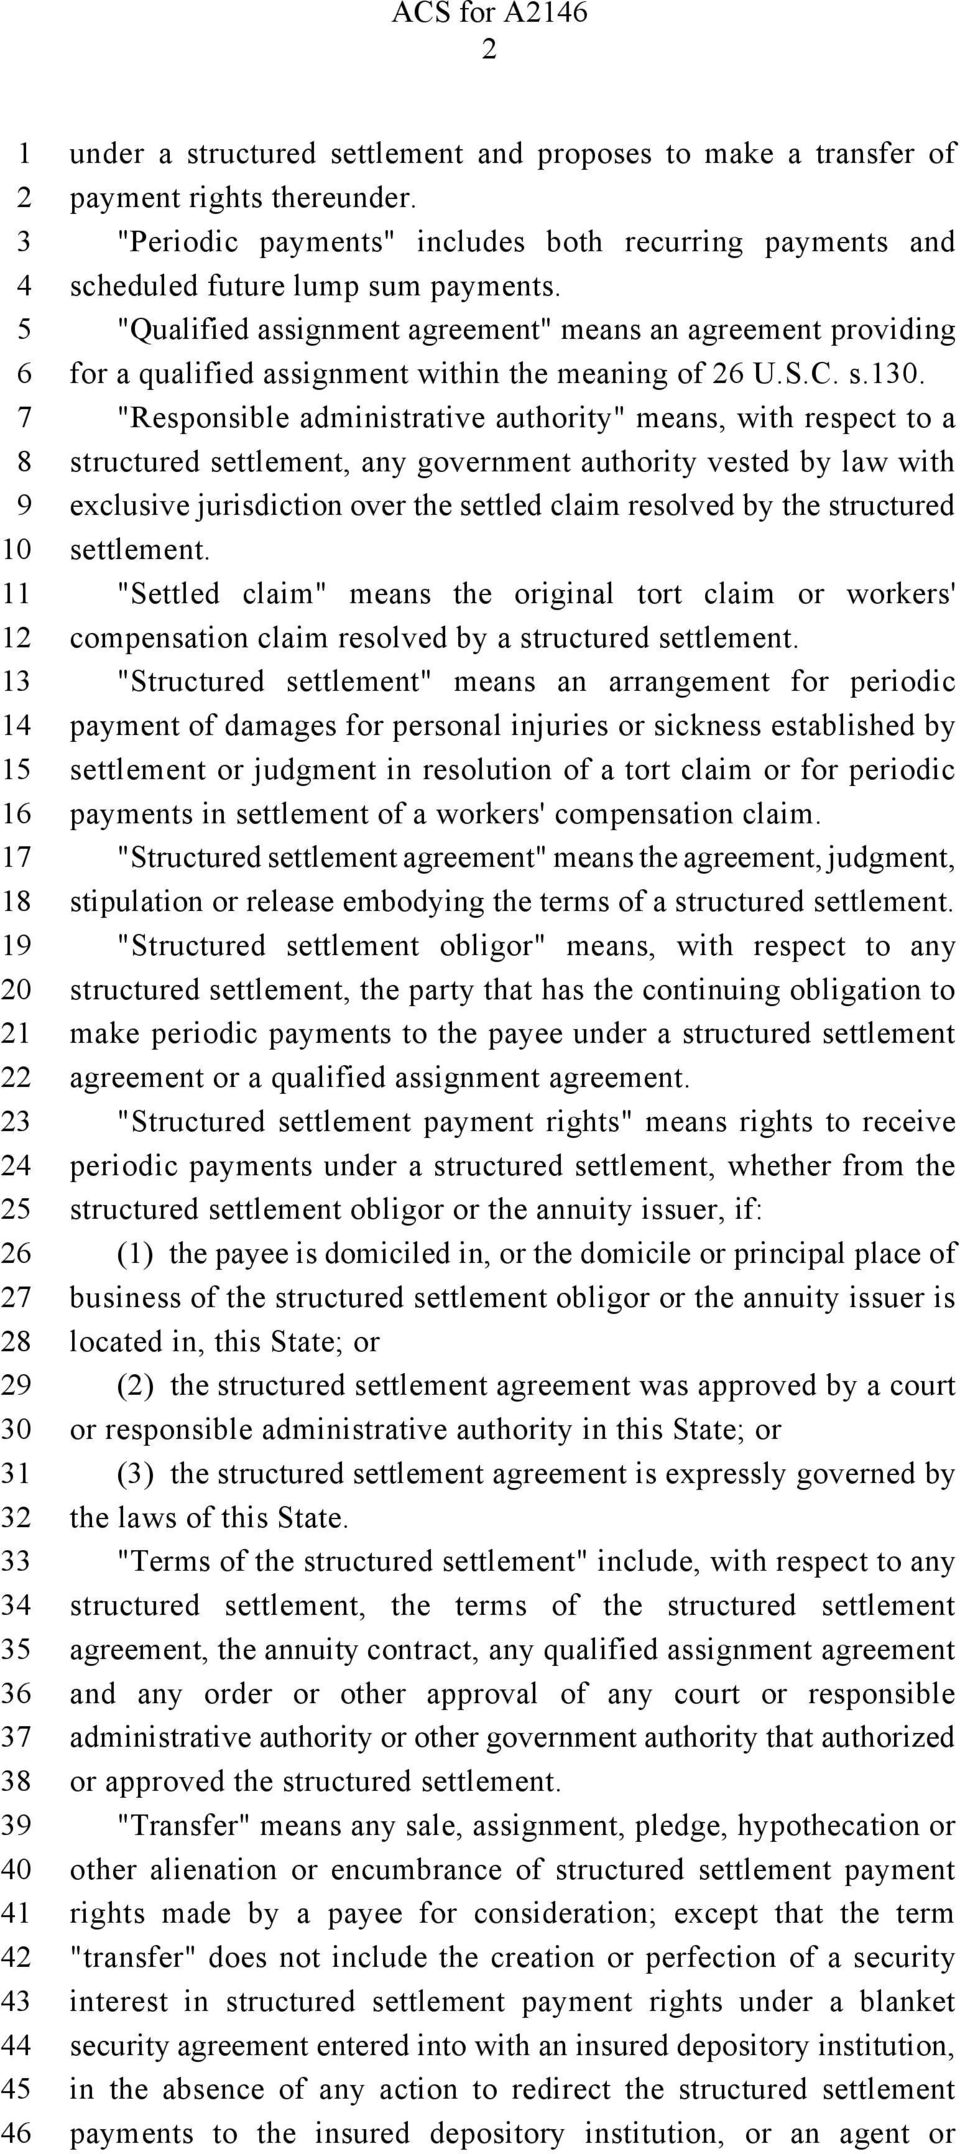 """Qualified assignment agreement"" means an agreement providing for a qualified assignment within the meaning of U.S.C. s.0."